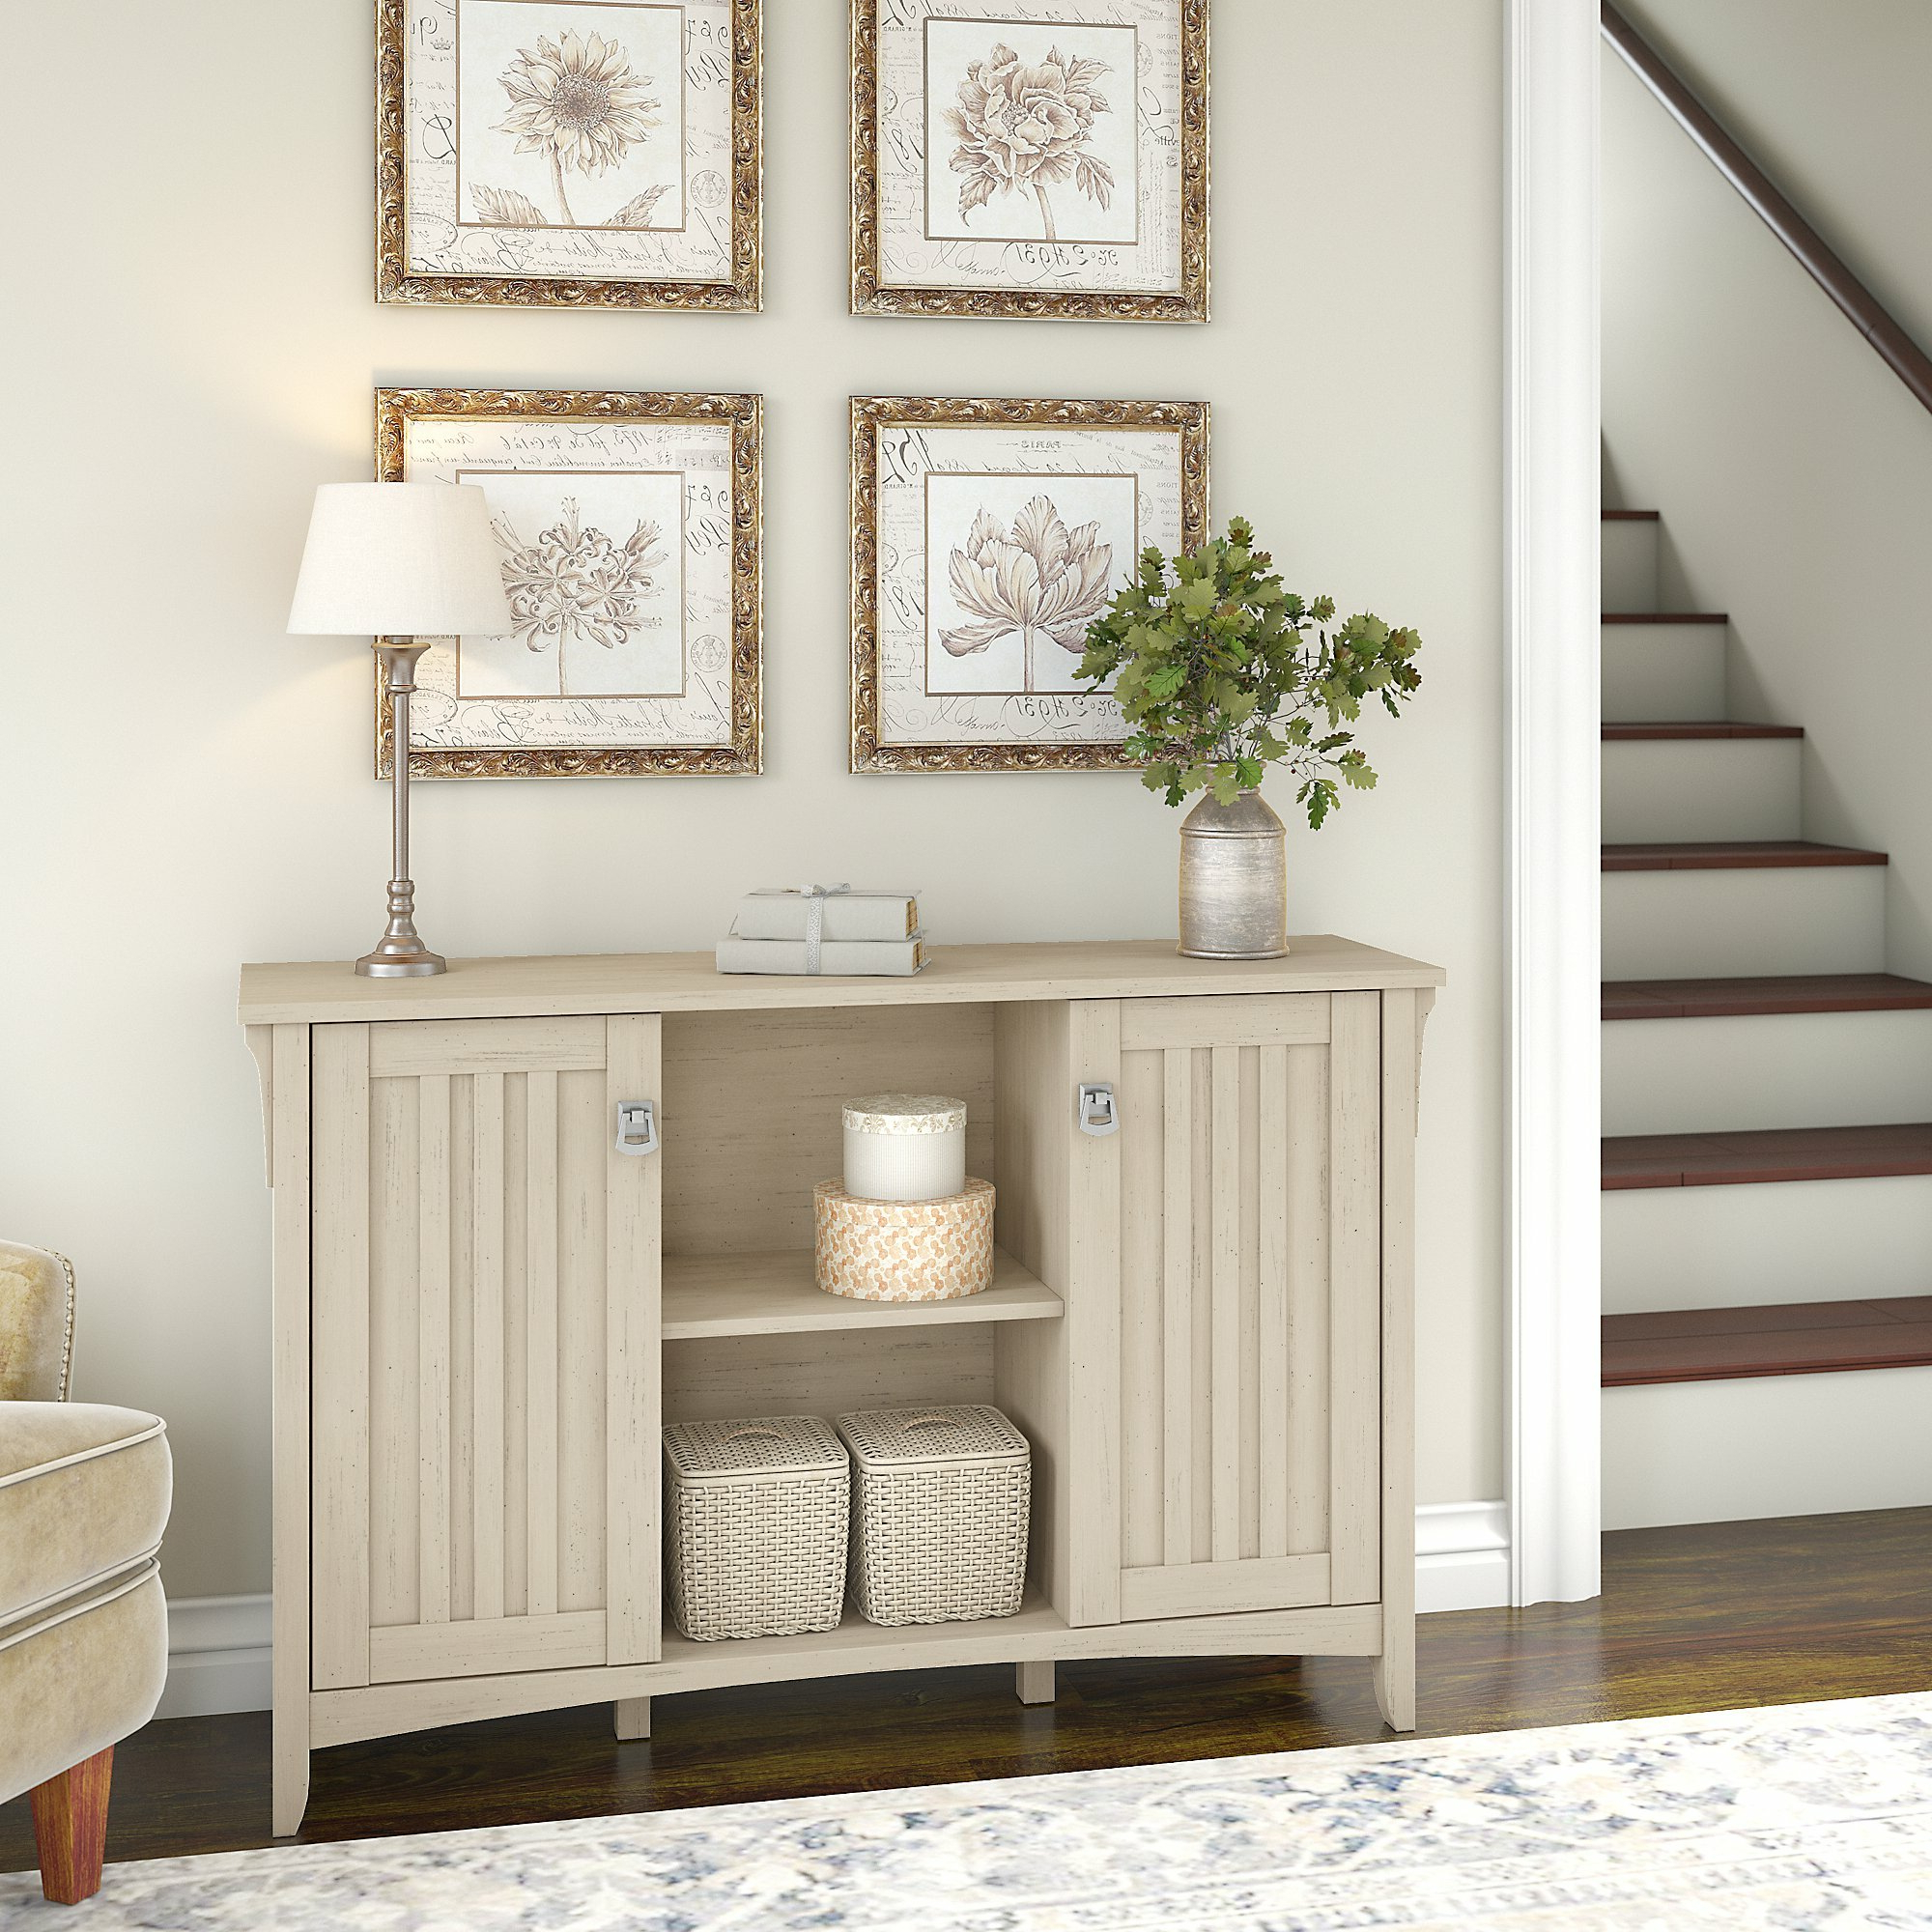 Farmhouse & Rustic Three Posts Sideboards & Buffets (View 10 of 20)